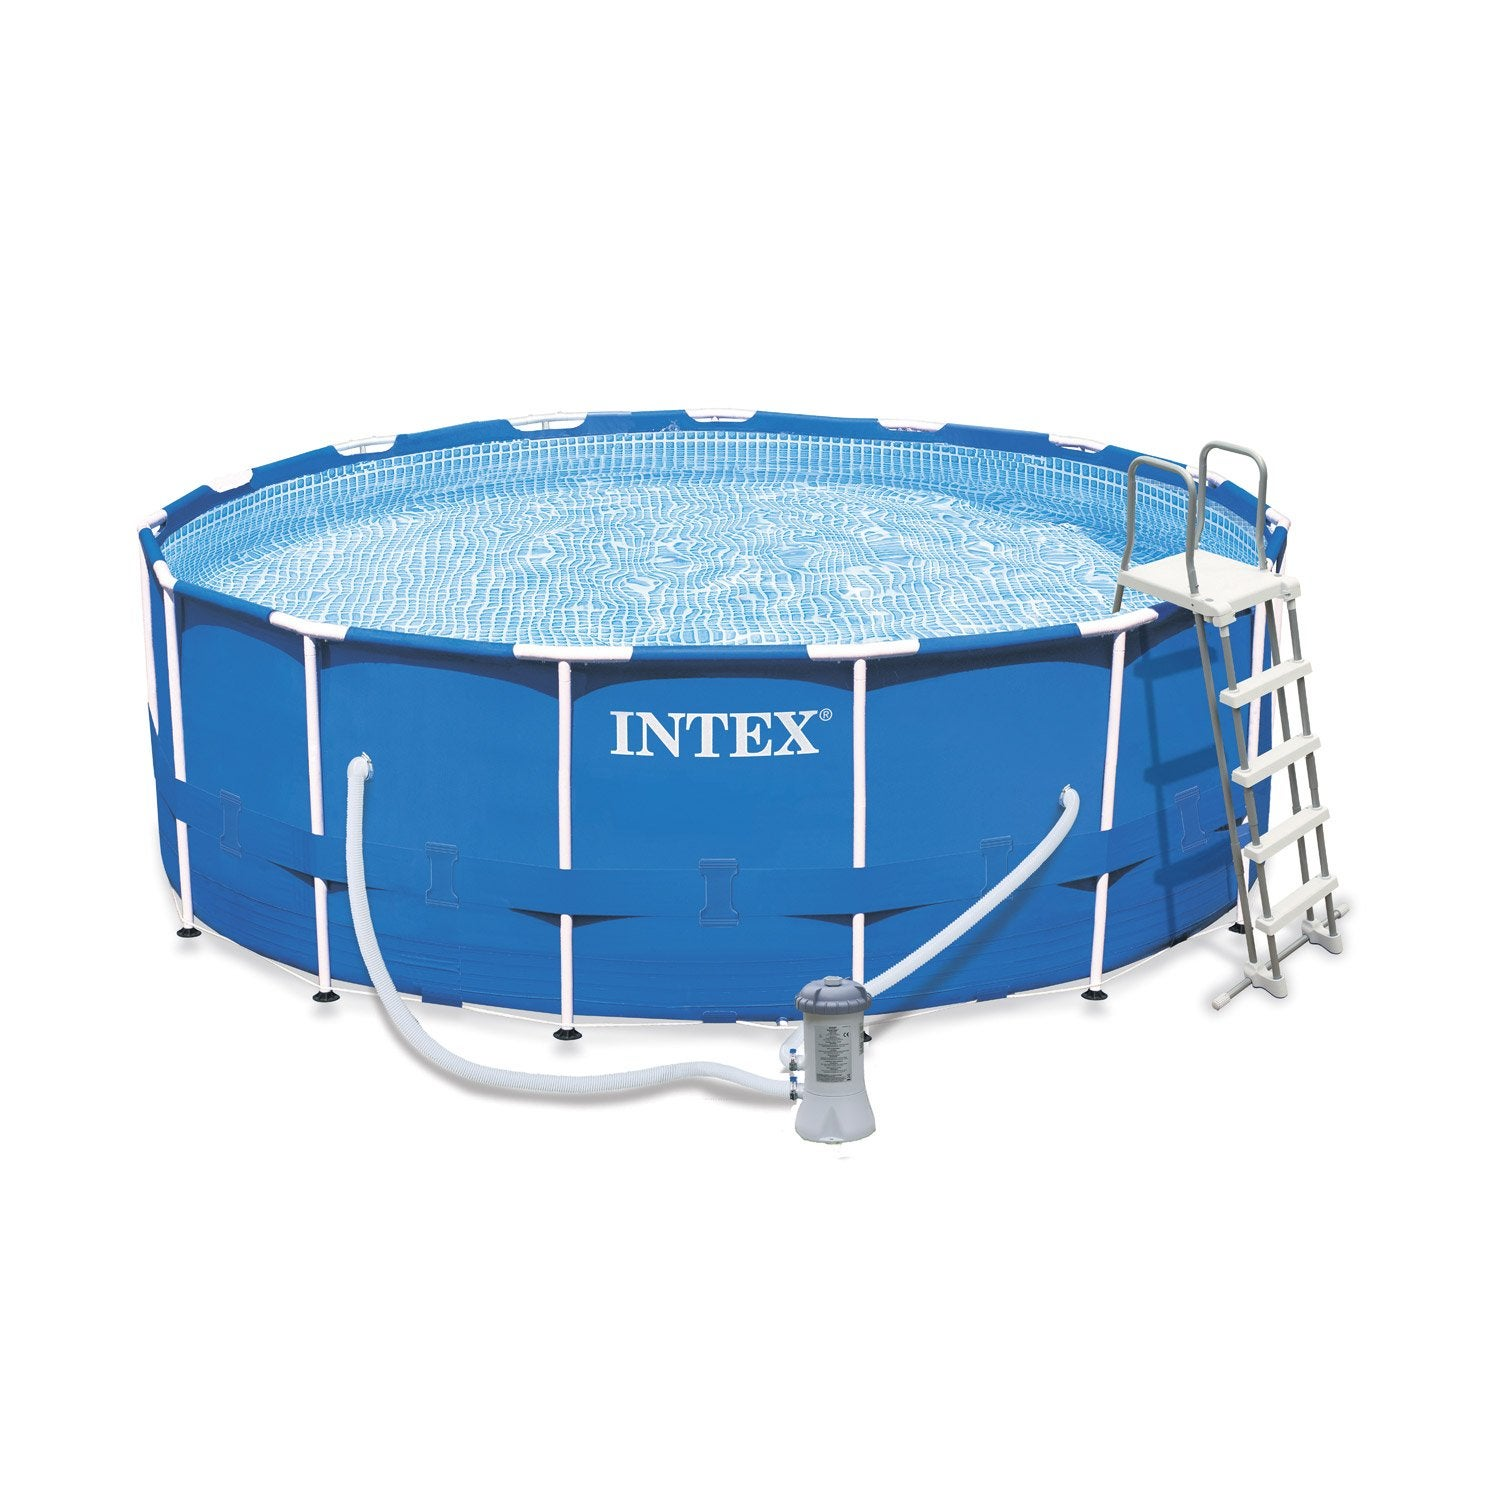 Piscine Tubulaire Intex Castorama : piscine hors sol autoportante tubulaire metal frame intex ~ Dailycaller-alerts.com Idées de Décoration